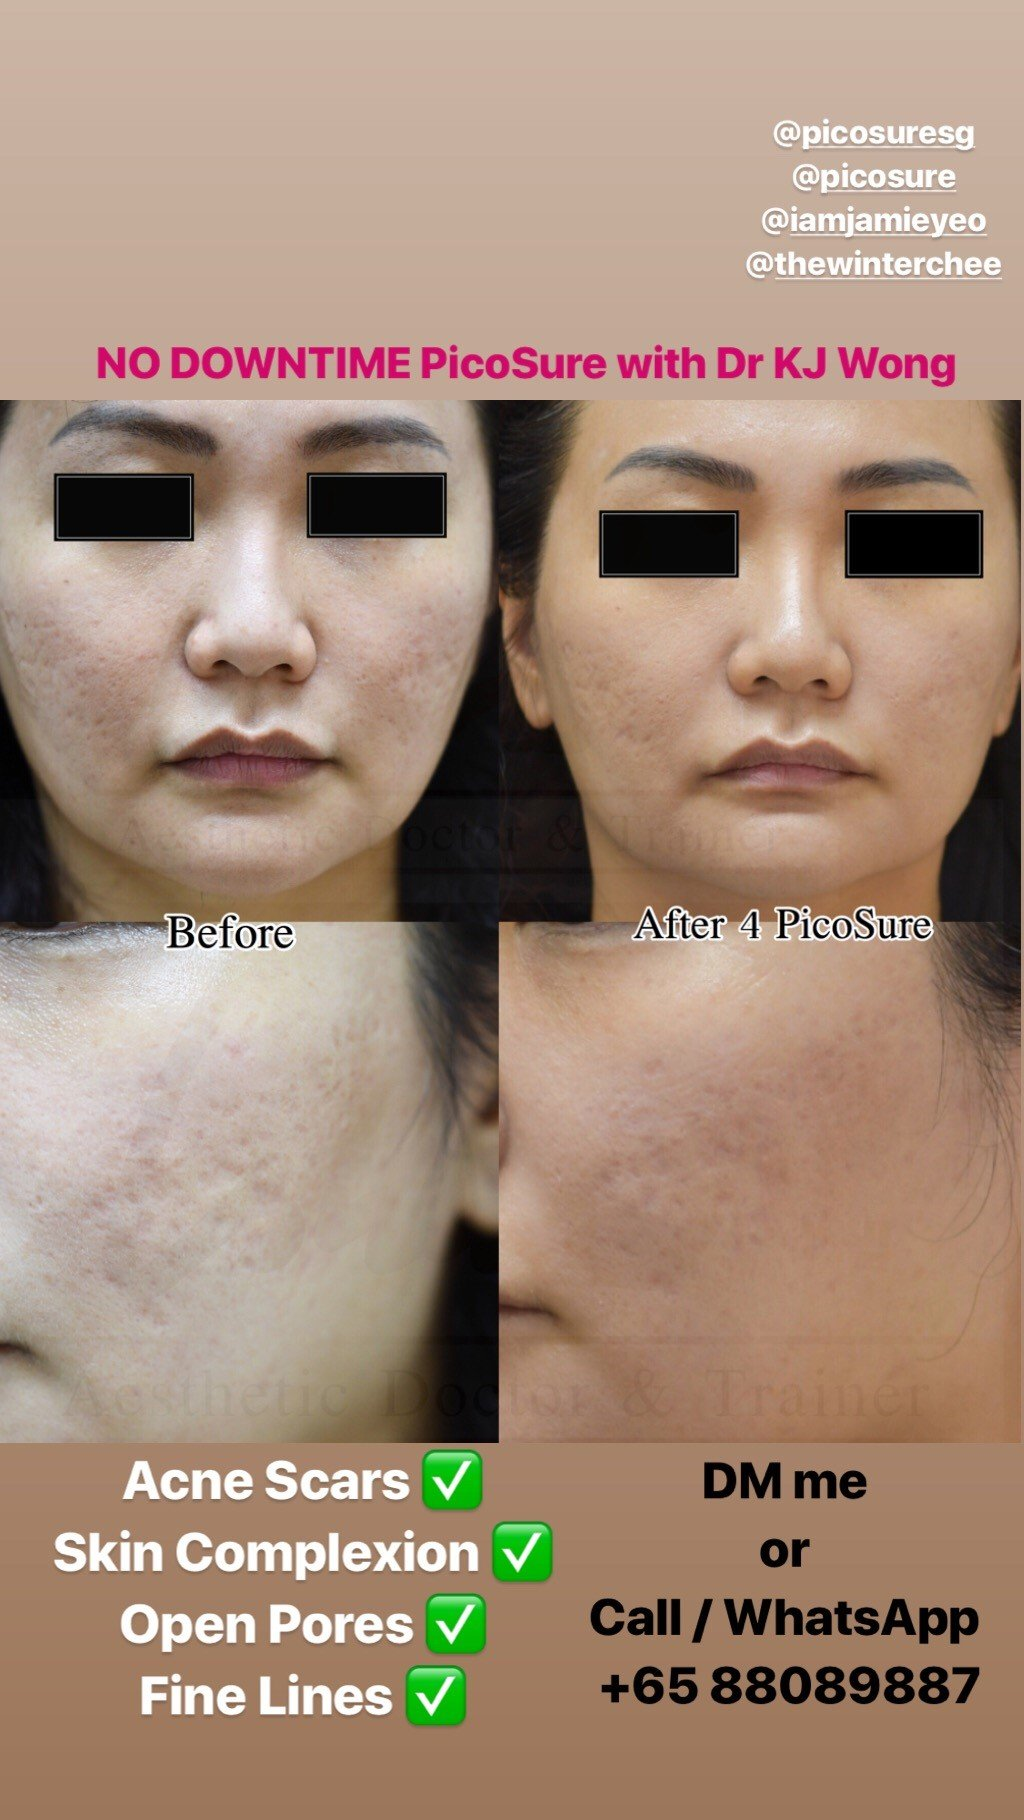 Before/After PicoSure on depressed acne scars